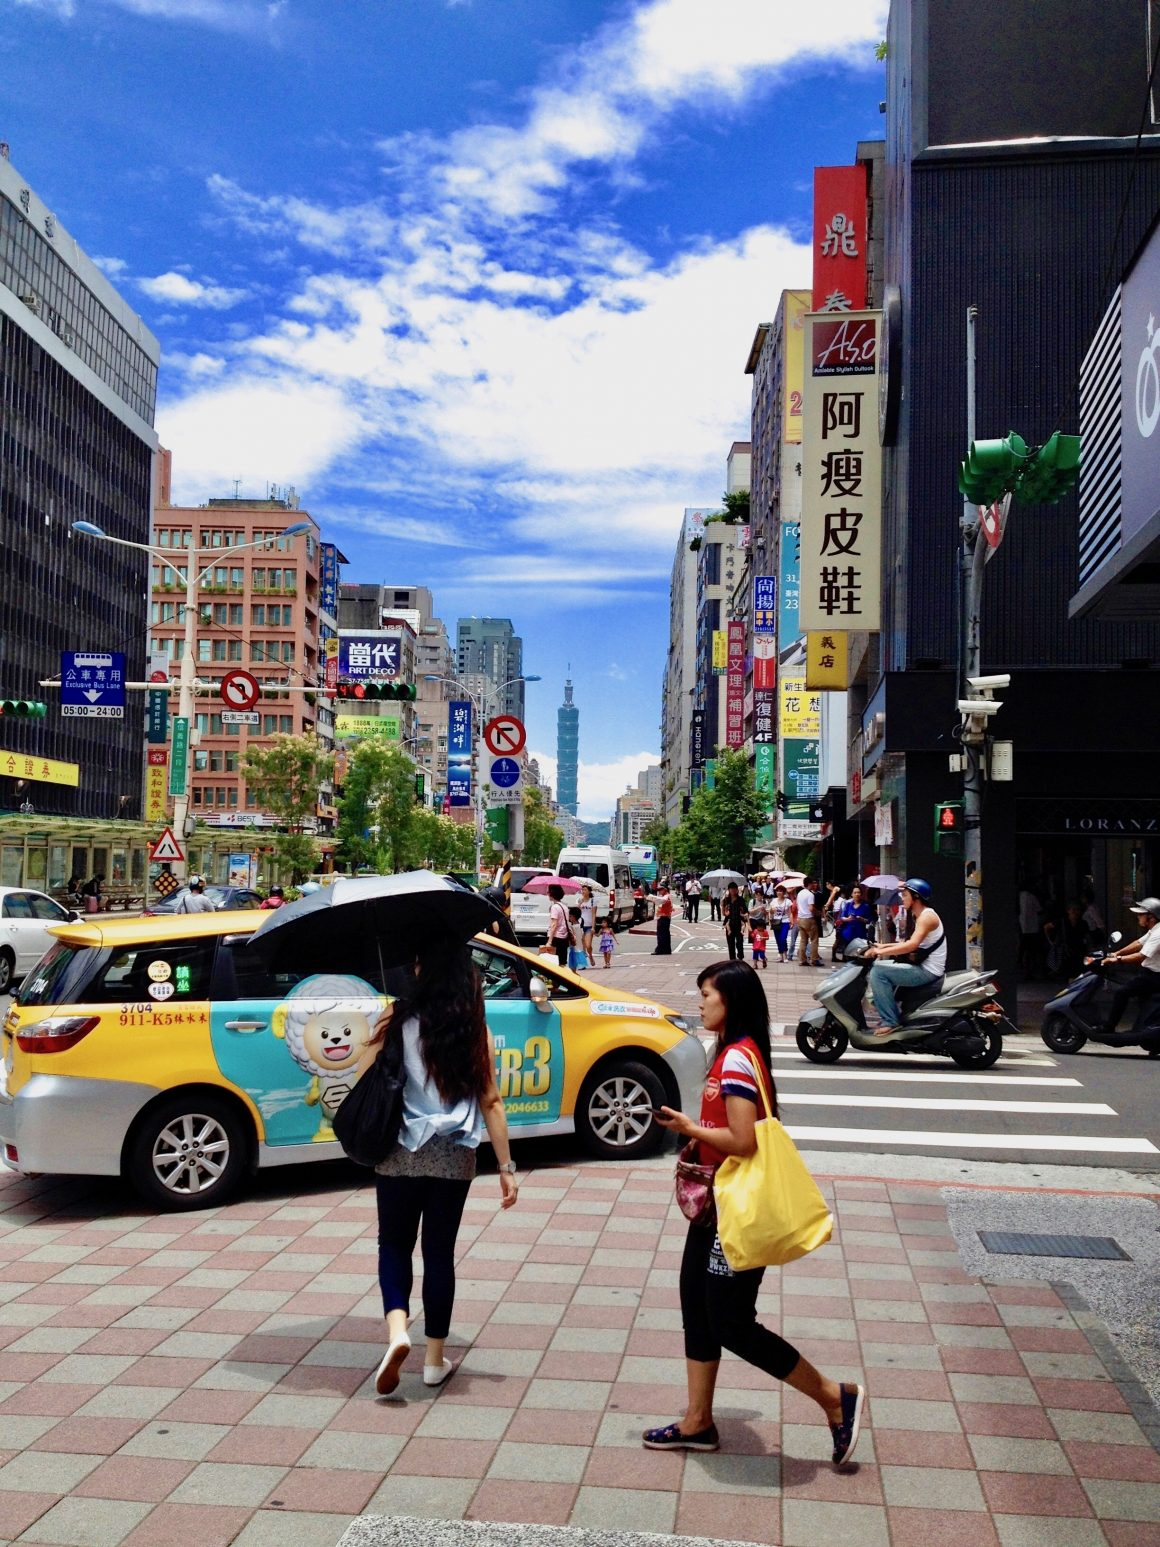 TAIWAN IS ONE OF THE MOST MODERN COUNTRIES IN THE WORLD. © PHOTO FROM THE AUTHOR'S PERSONAL COLLECTION